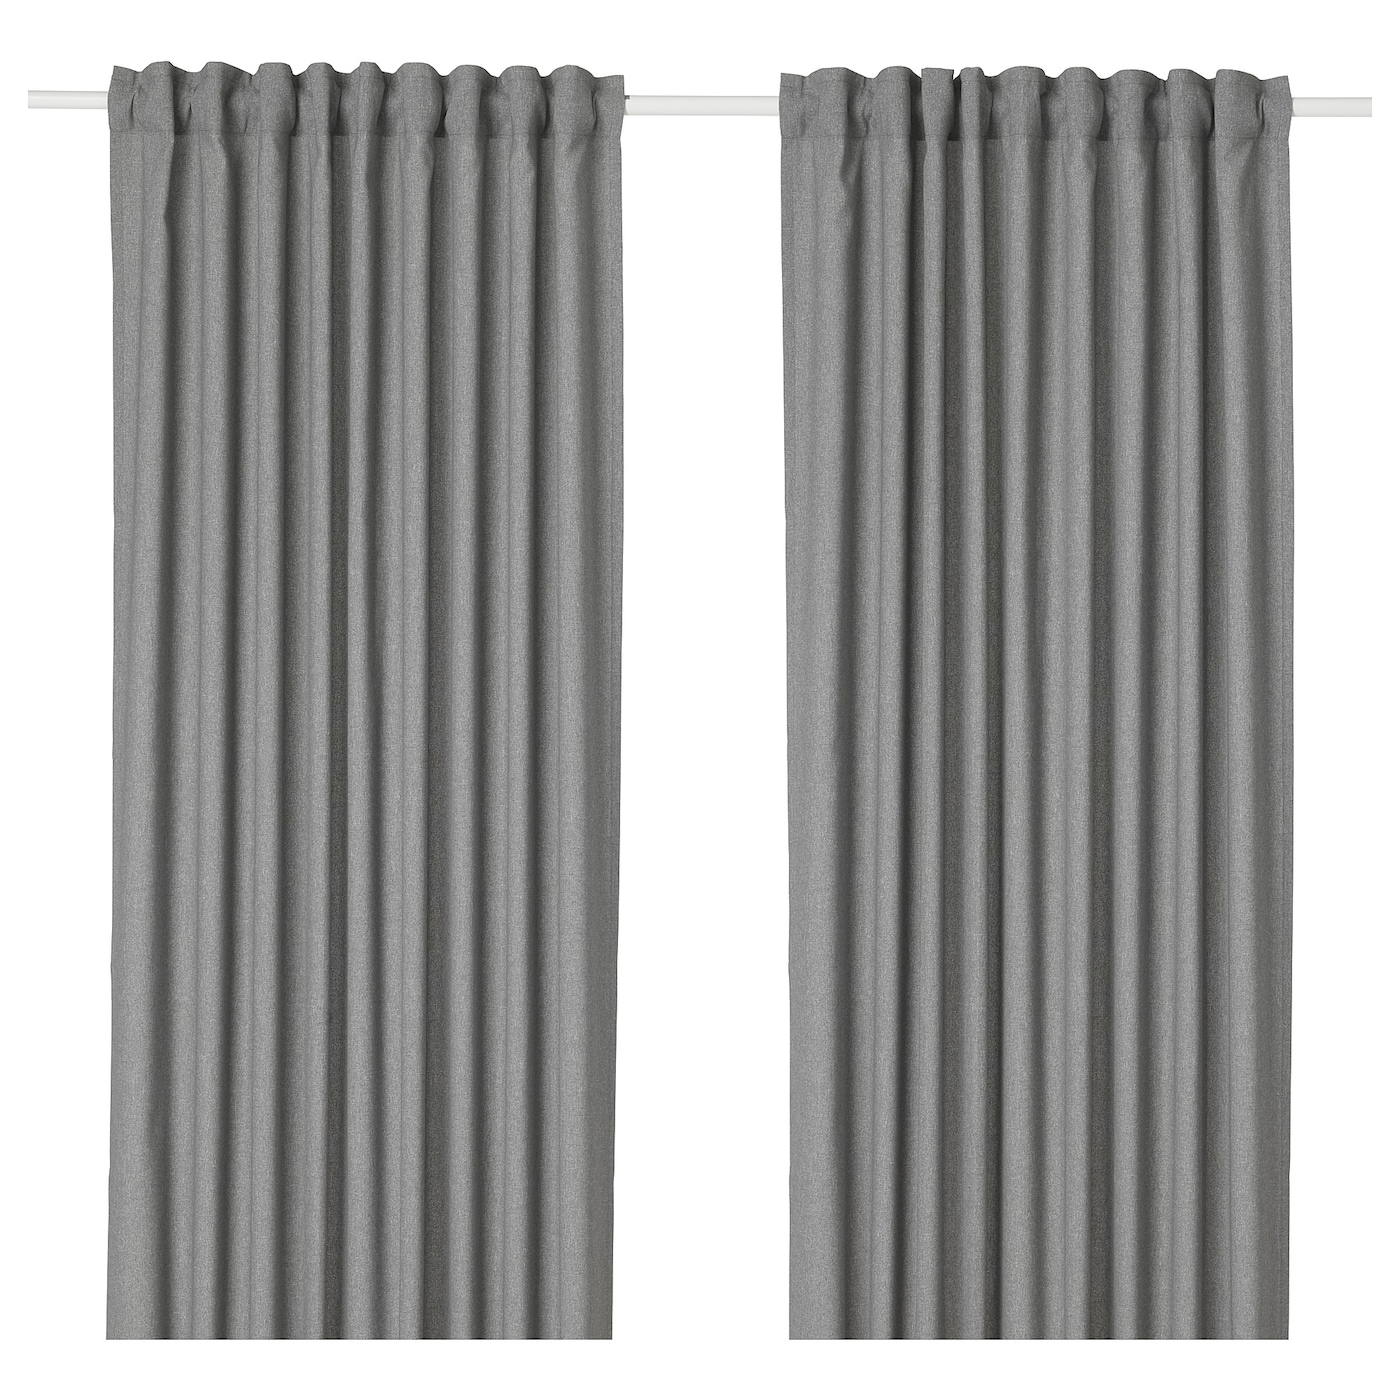 IKEA HANNALENA curtains, 1 pair